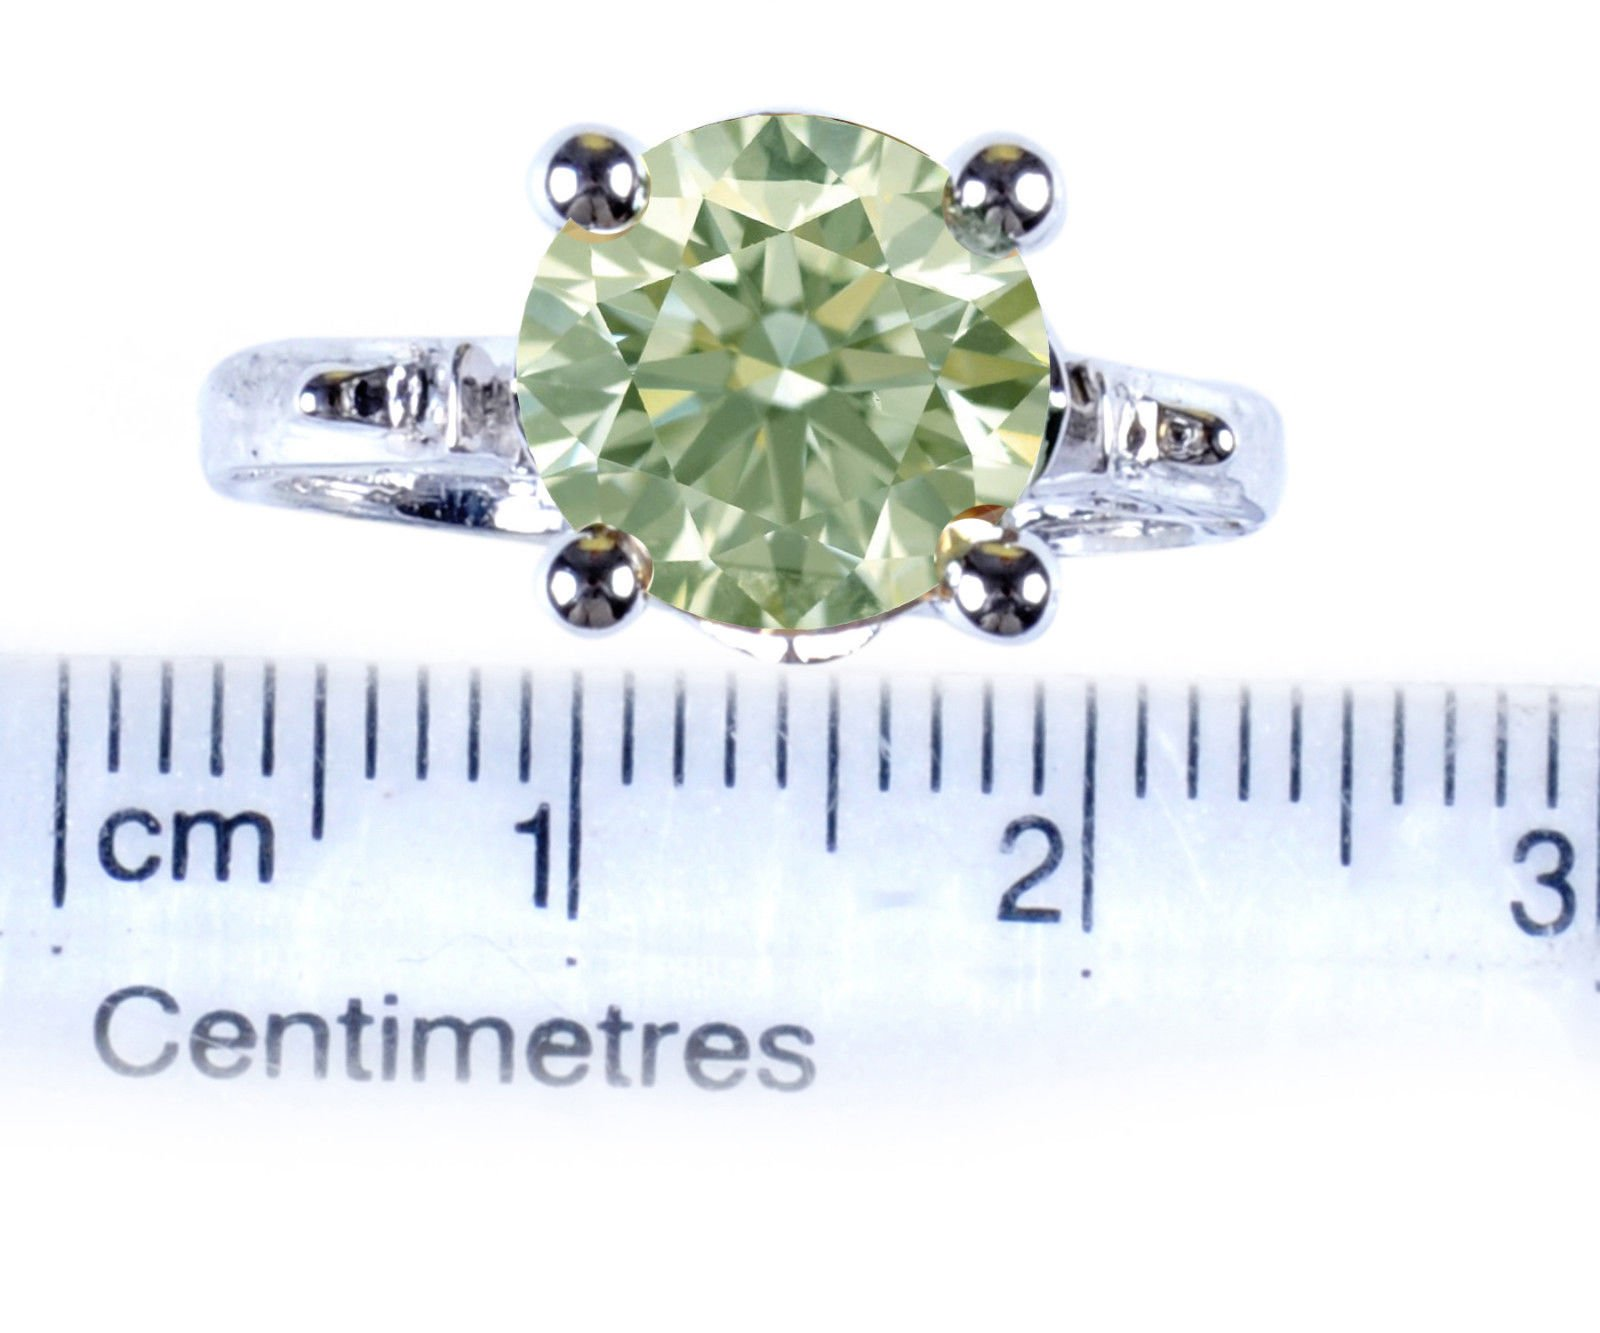 RINGJEWEL 2.78 ct VS1 Round Silver Plated Moissanite Engagement Ring Off White Light Green Color Size 7 by RINGJEWEL (Image #2)